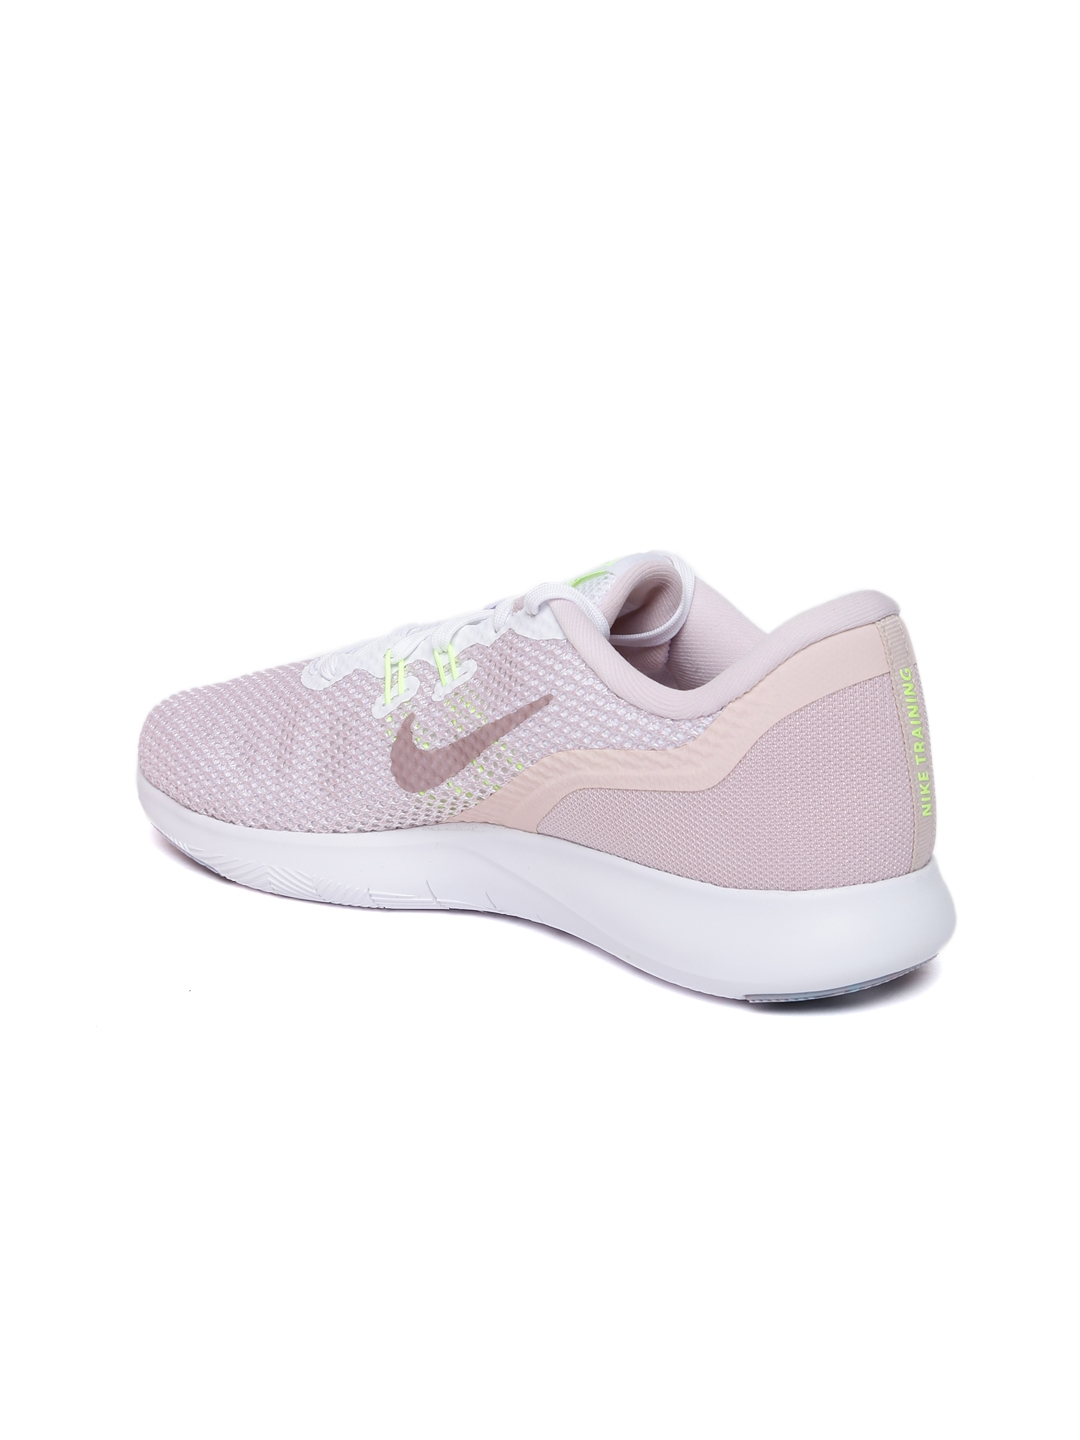 8fab1703e121 Buy Nike Women Pink FLEX TRAINER 7 Training Shoes - Sports Shoes for ...